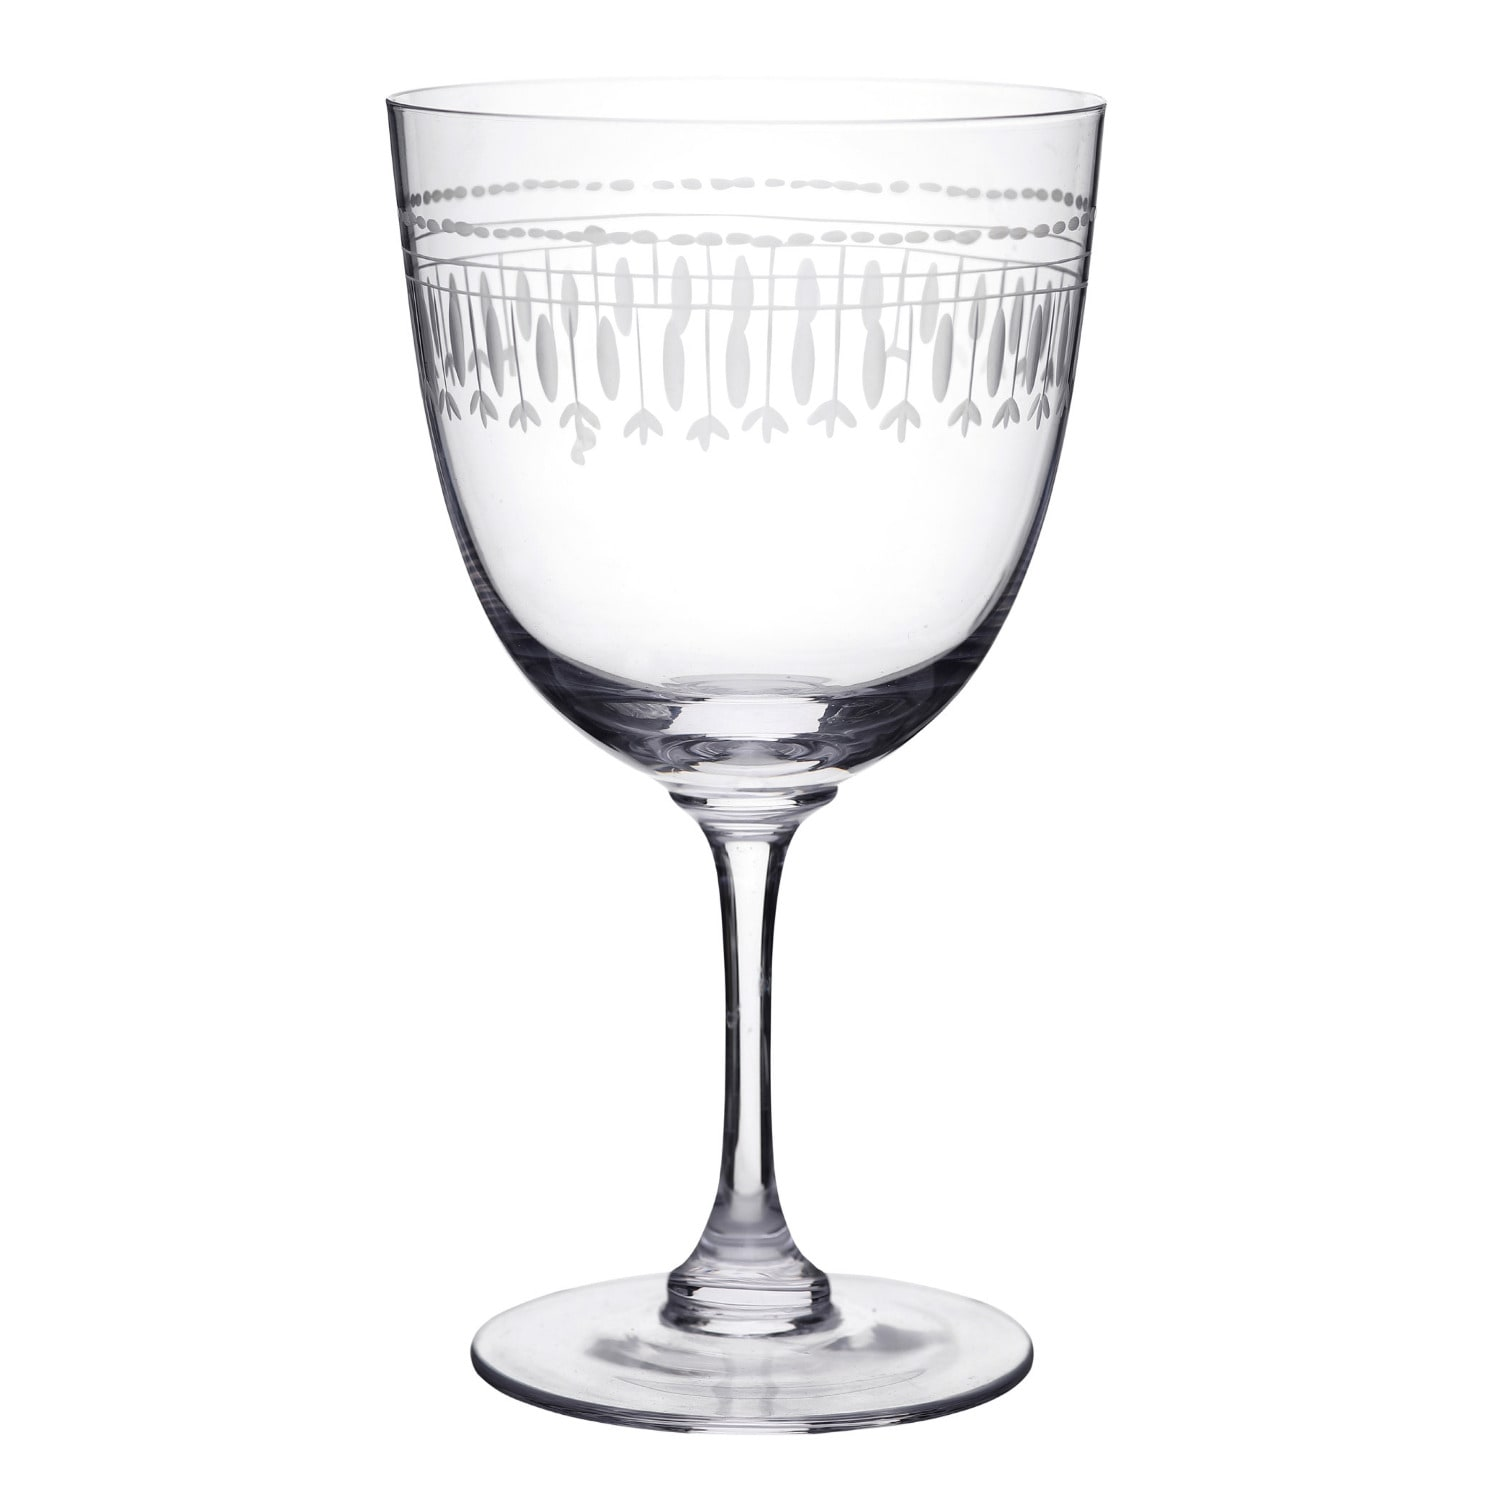 The Vintage List - Six Hand-Engraved Crystal Wine Glasses with Ovals Design